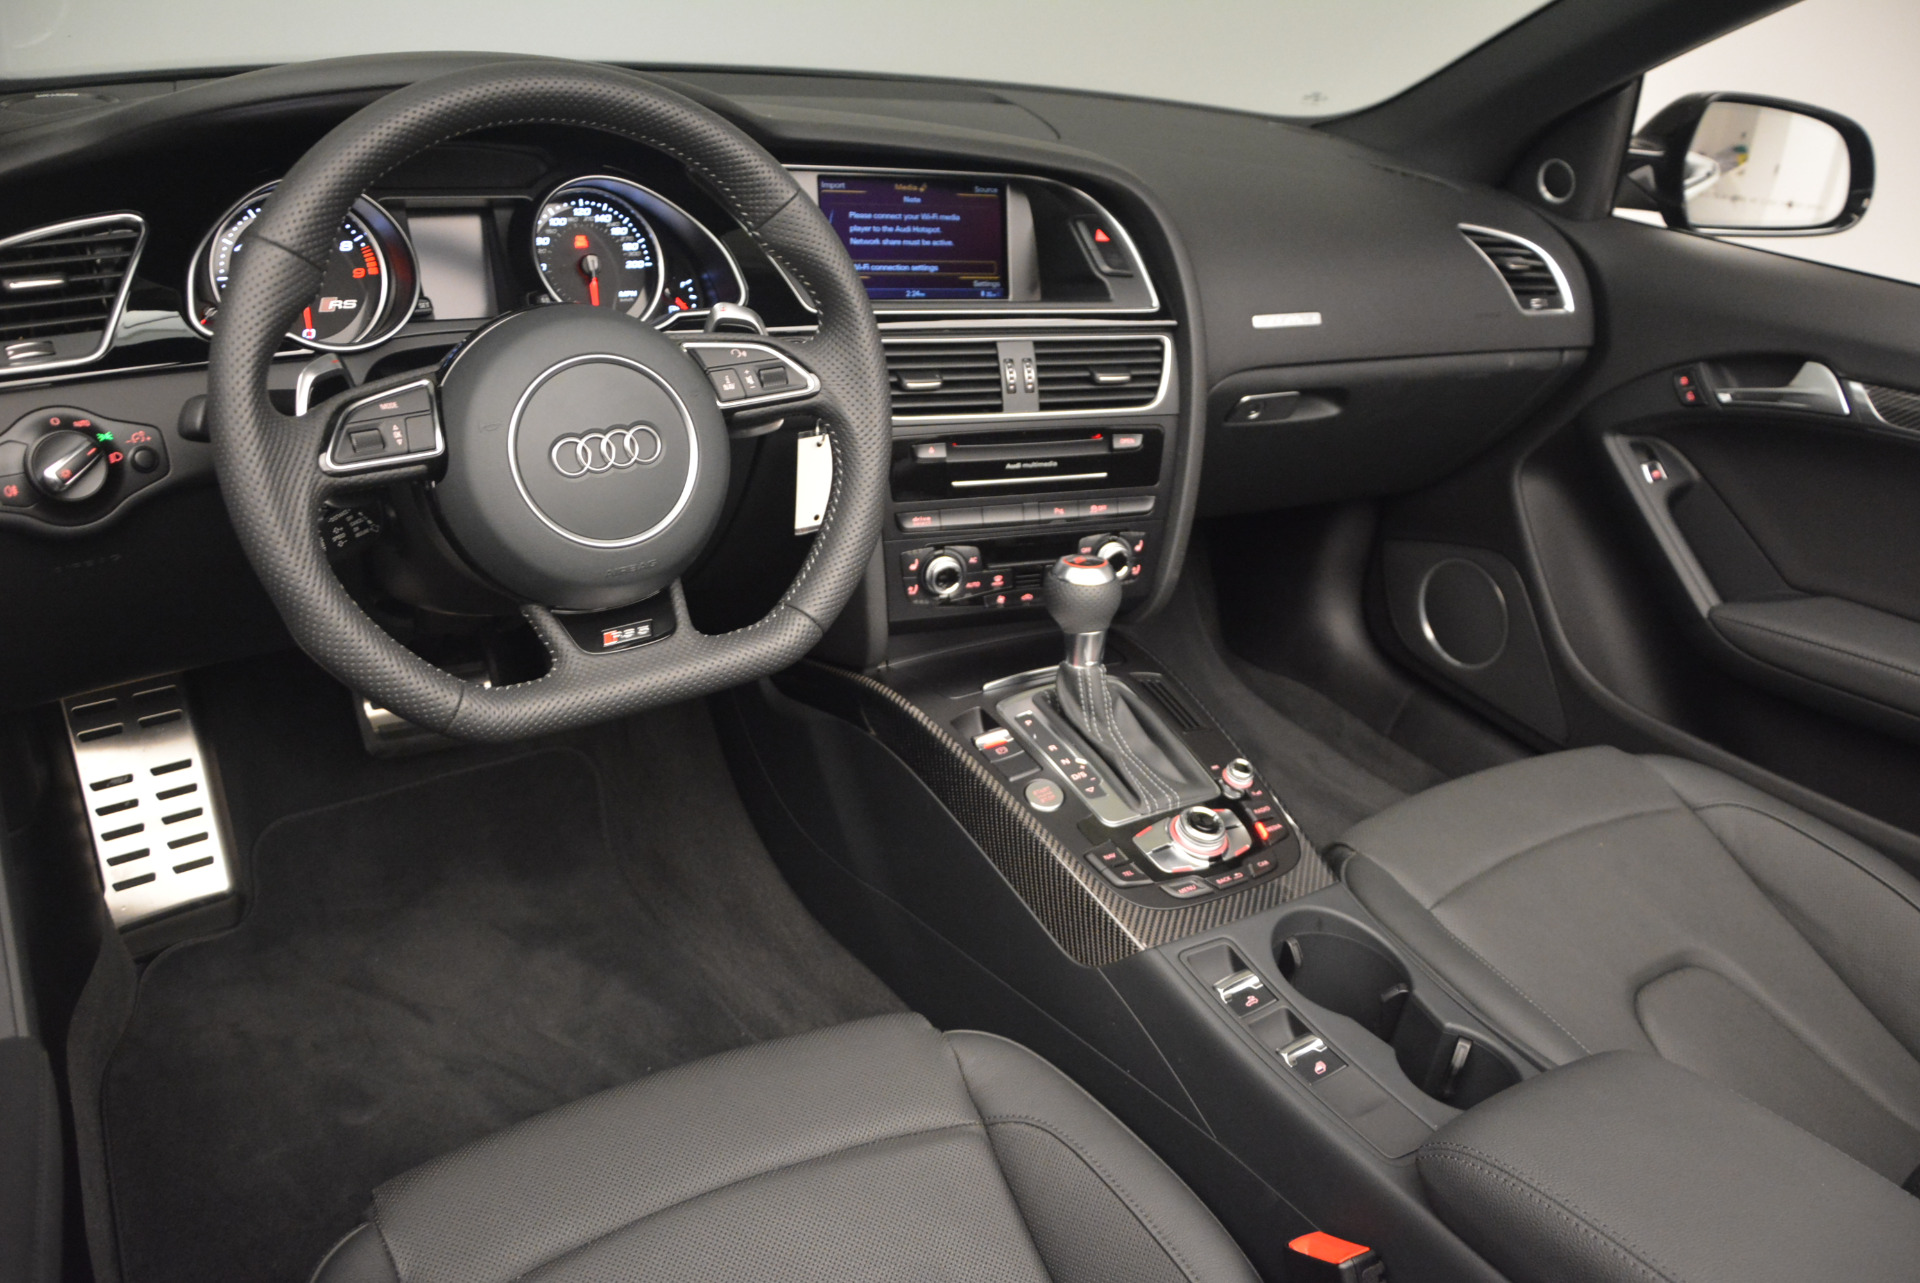 Used 2014 Audi RS 5 quattro For Sale In Greenwich, CT 1149_p31